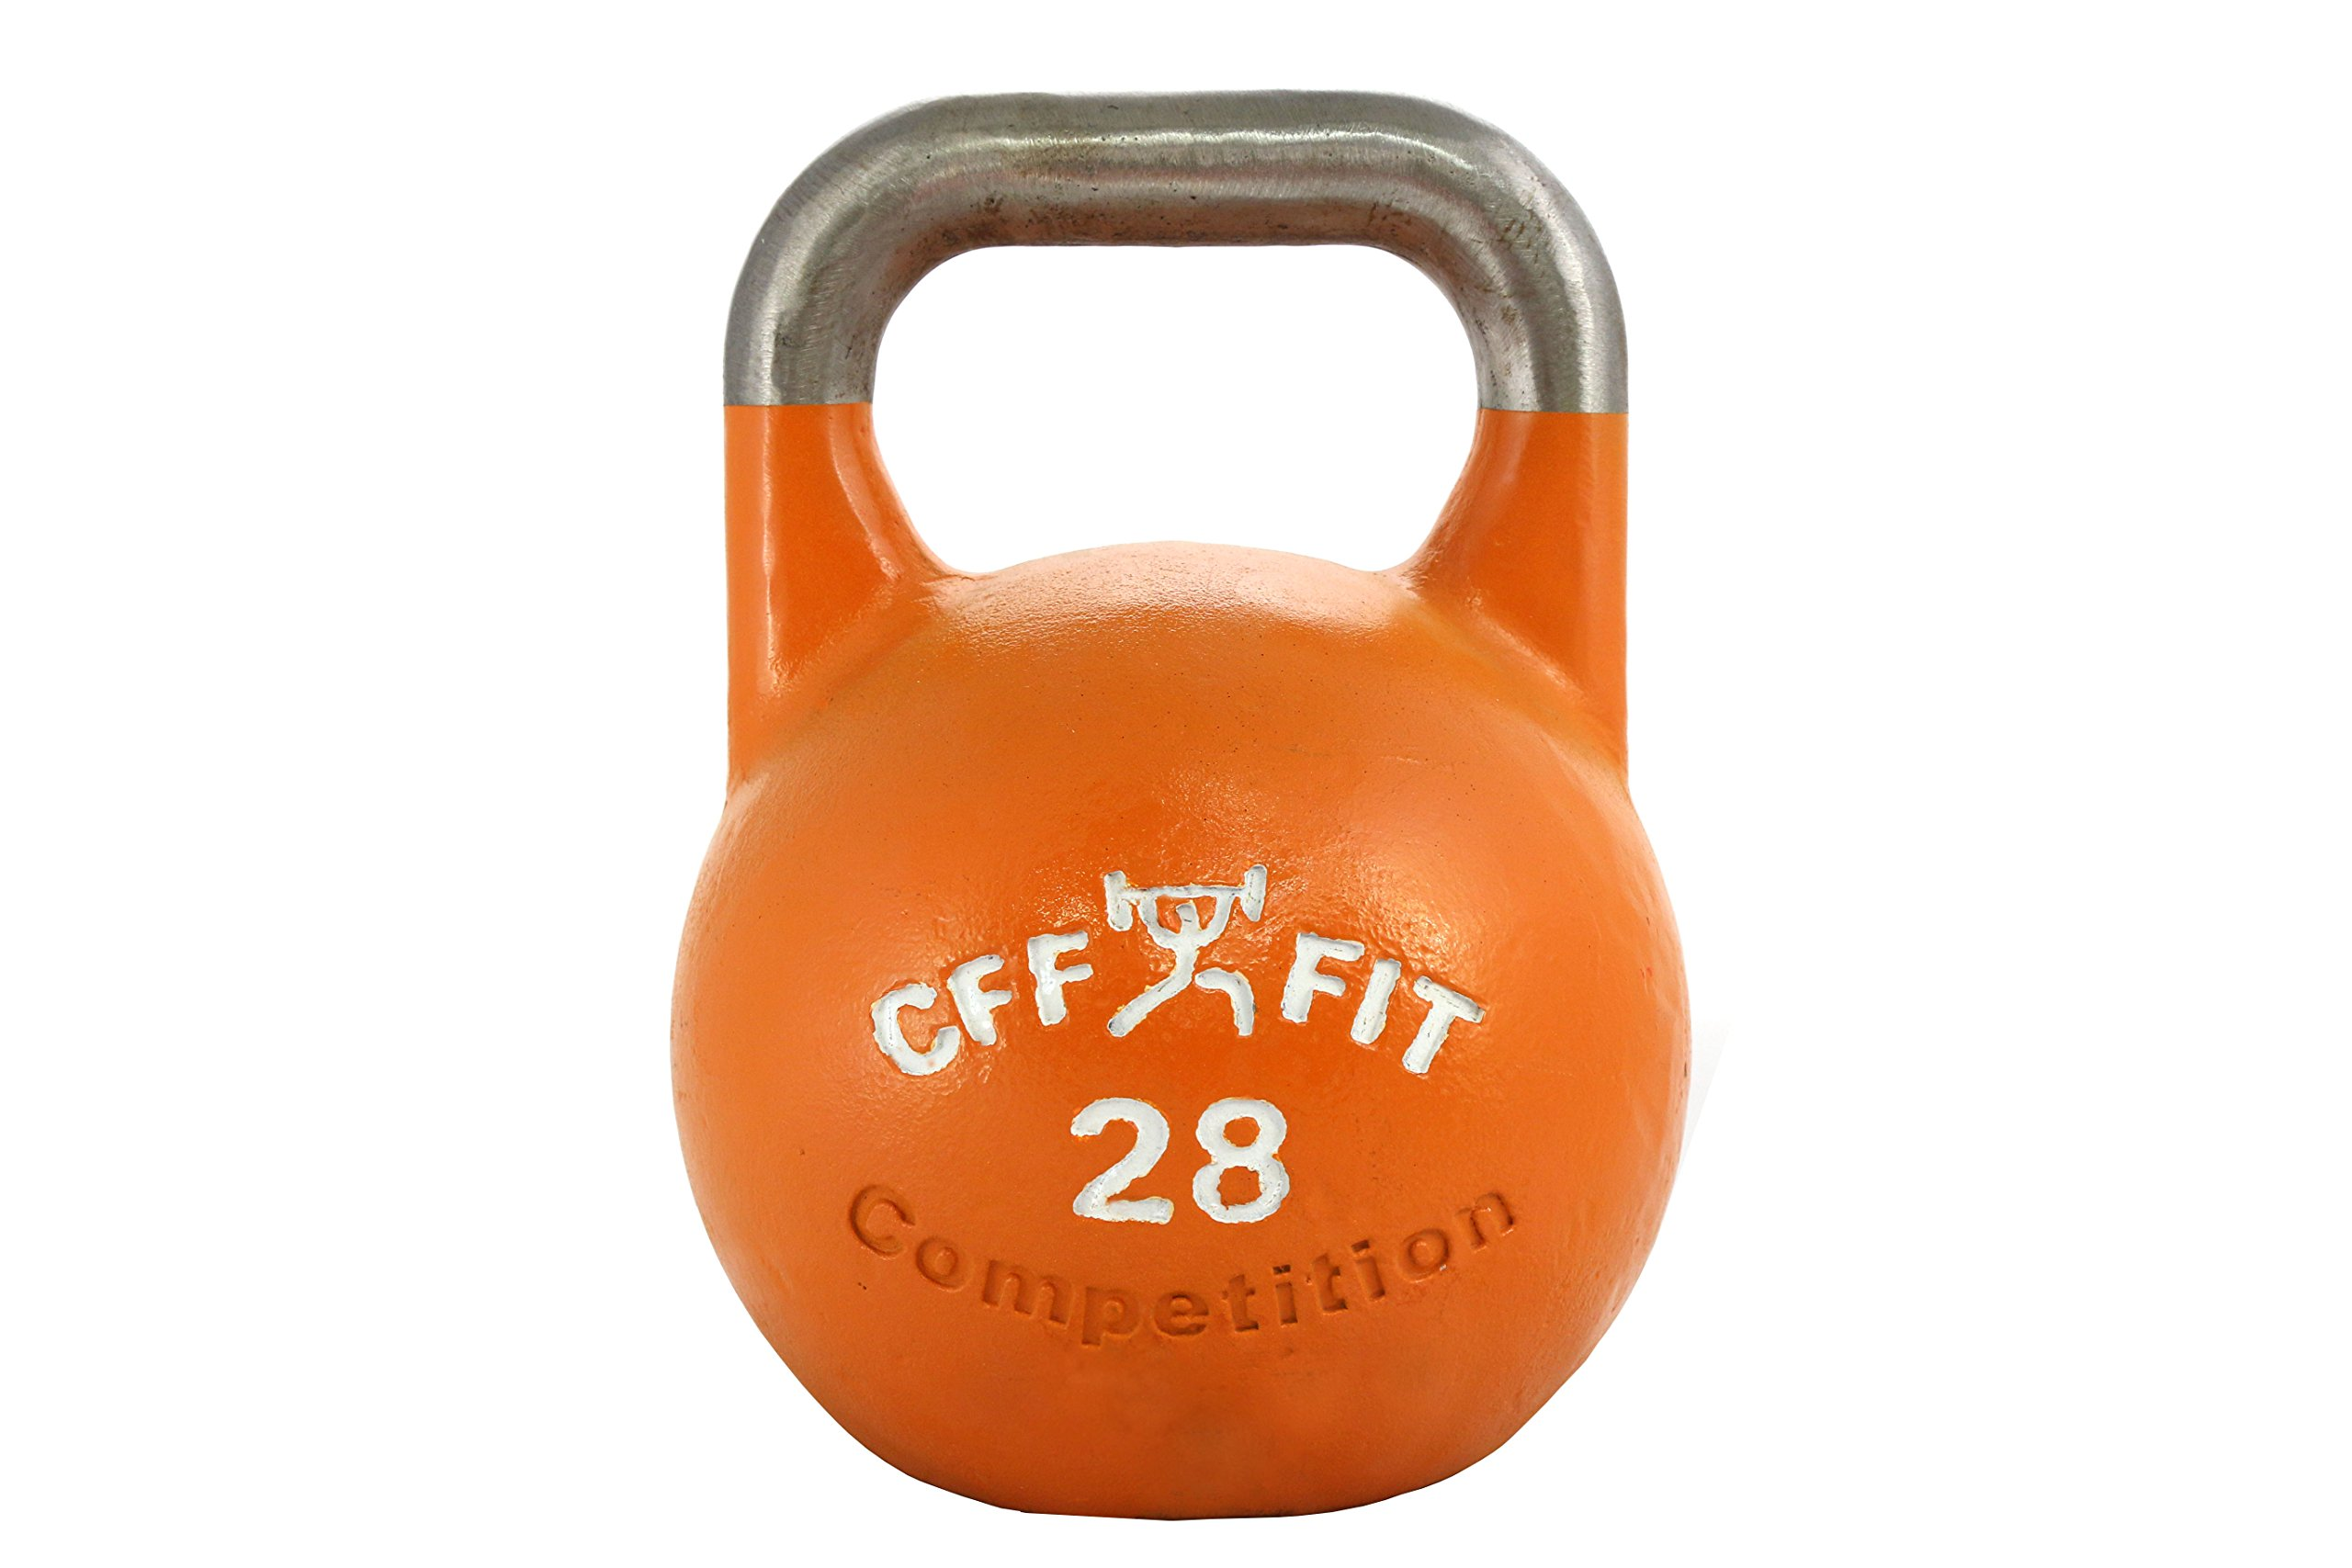 CFF Pro Competition Russian Kettlebell, Orange, 28 kg